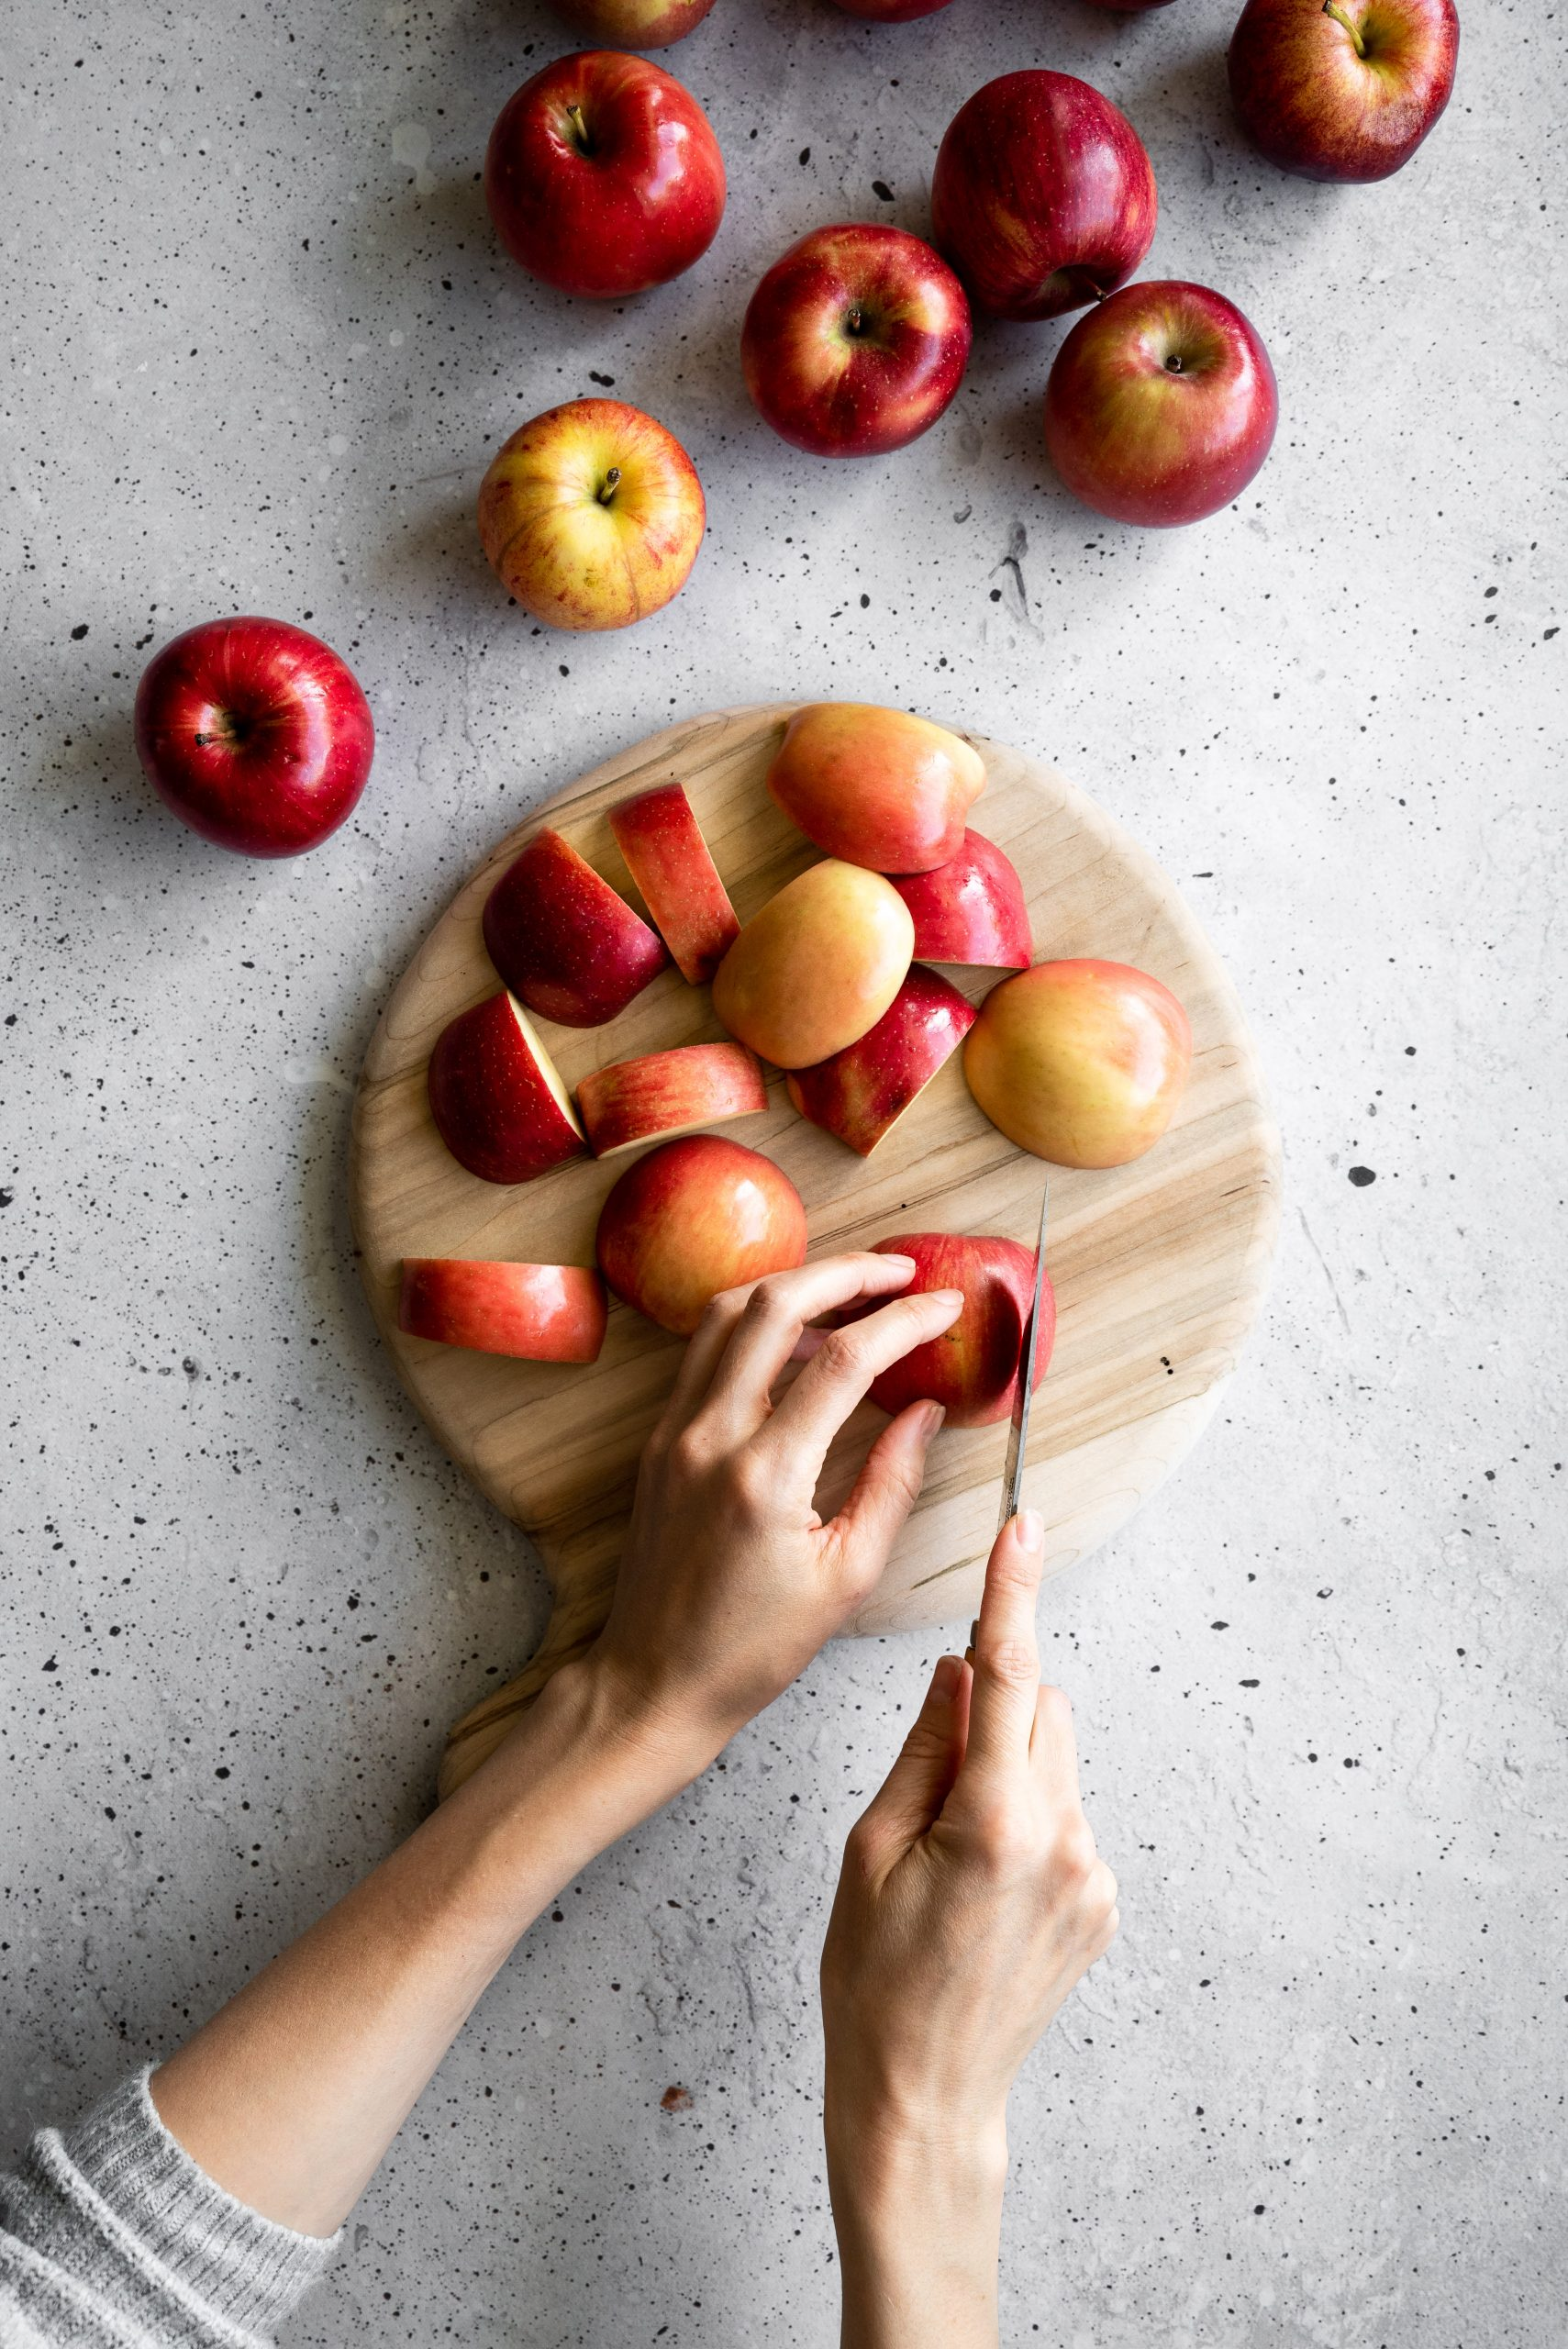 overhead image of a person slicing apples on a cutting board.